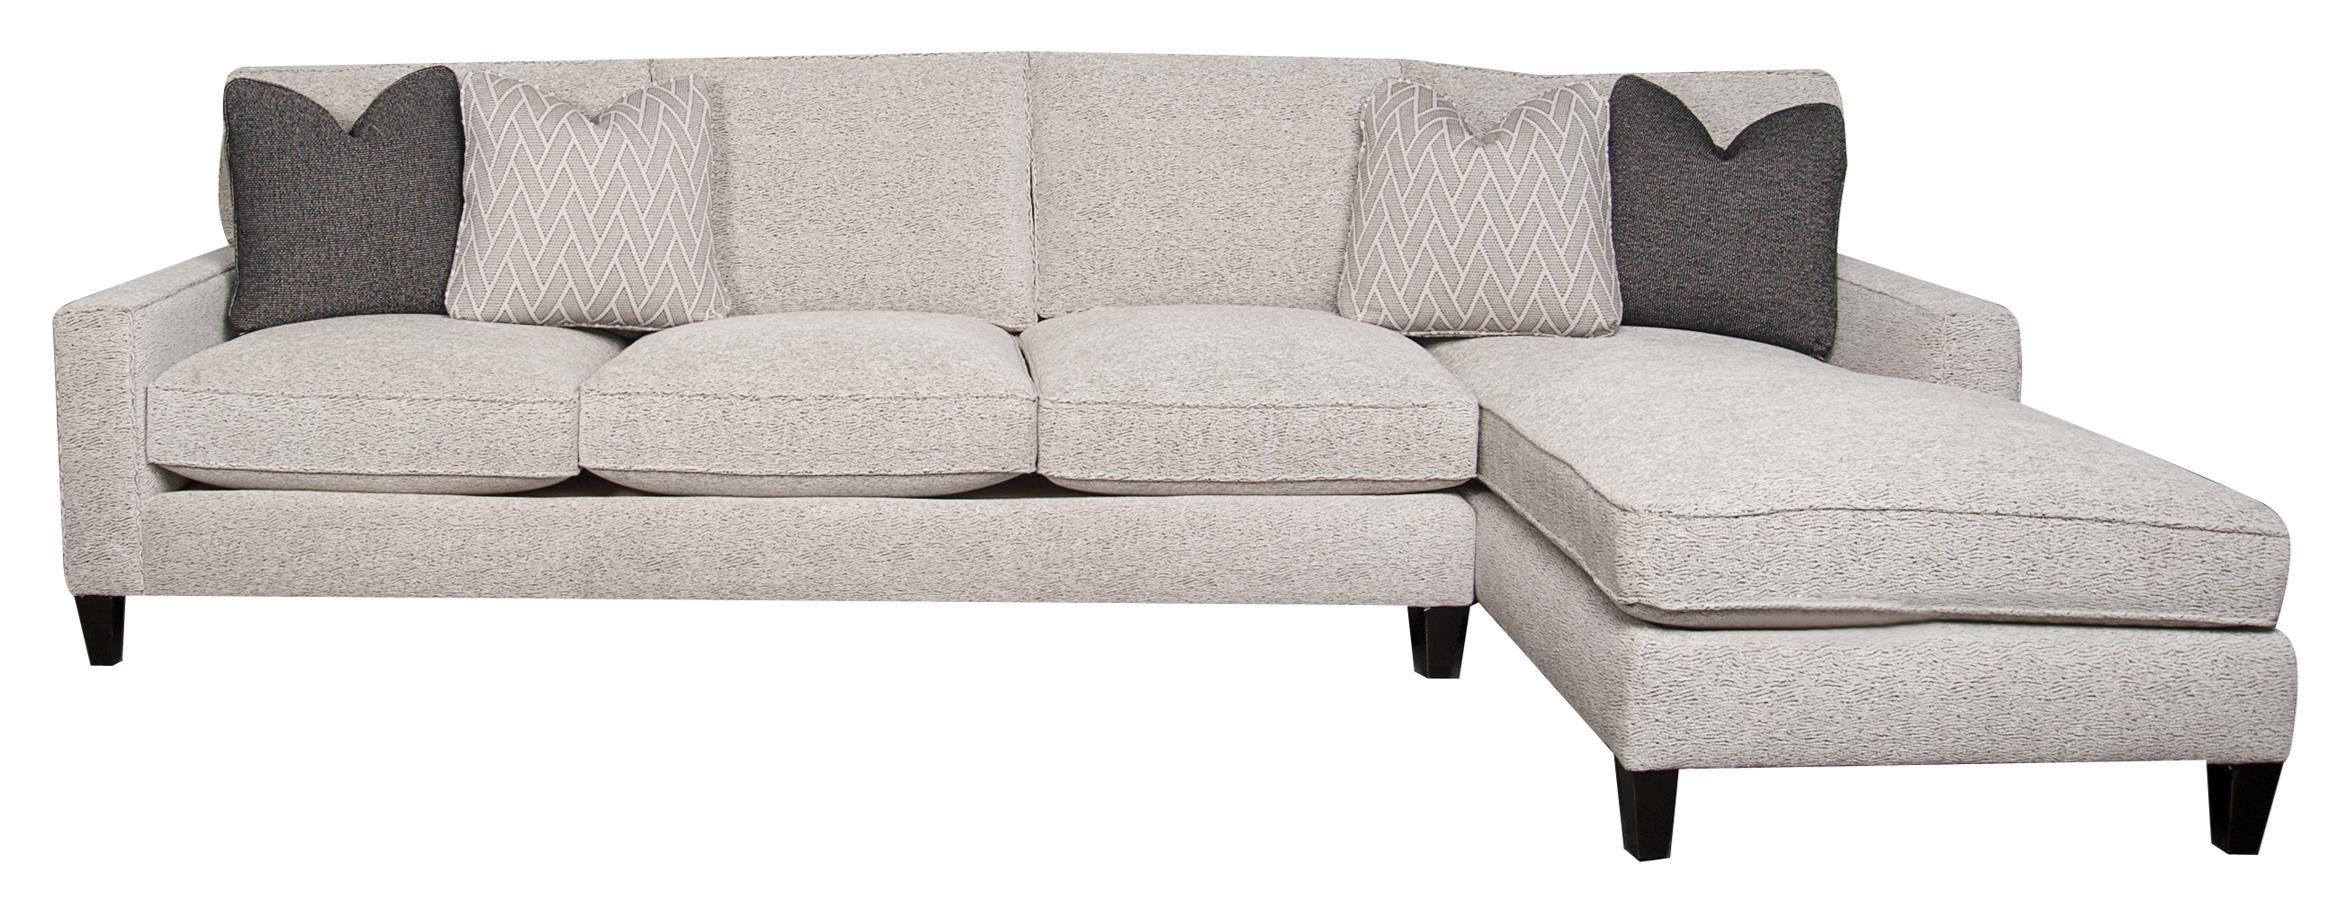 sectional sofa with chaise. Bernhardt SignatureSignature Sectional Sofa Chaise With S